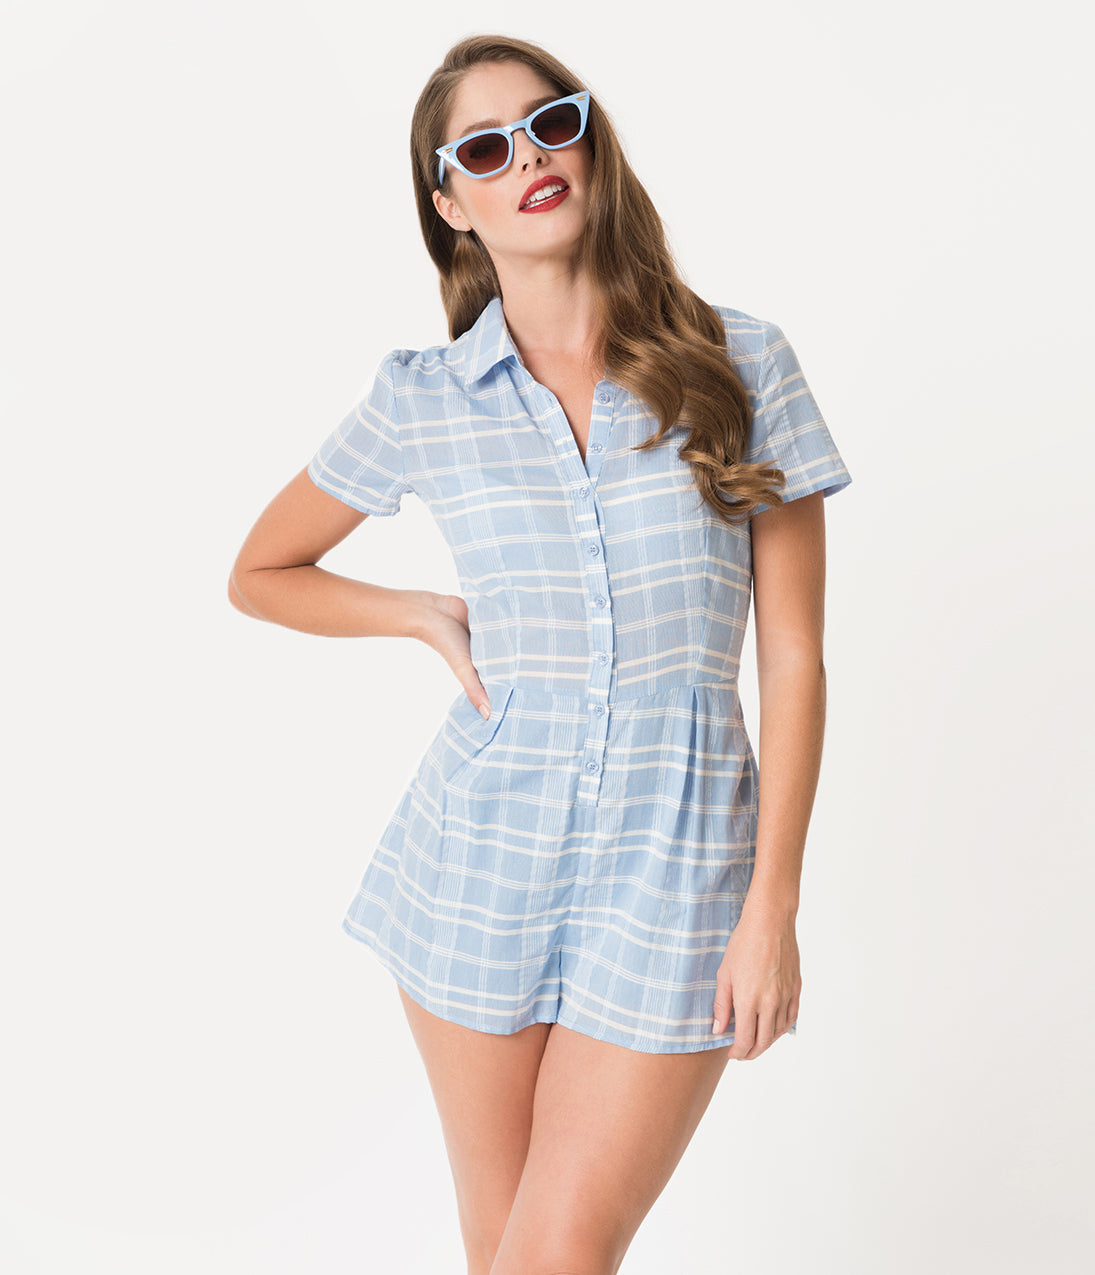 Vintage Rompers | Retro, Pin Up, Rockabilly Playsuits Retro Style Light Blue  White Plaid Cotton Jack Romper $58.00 AT vintagedancer.com